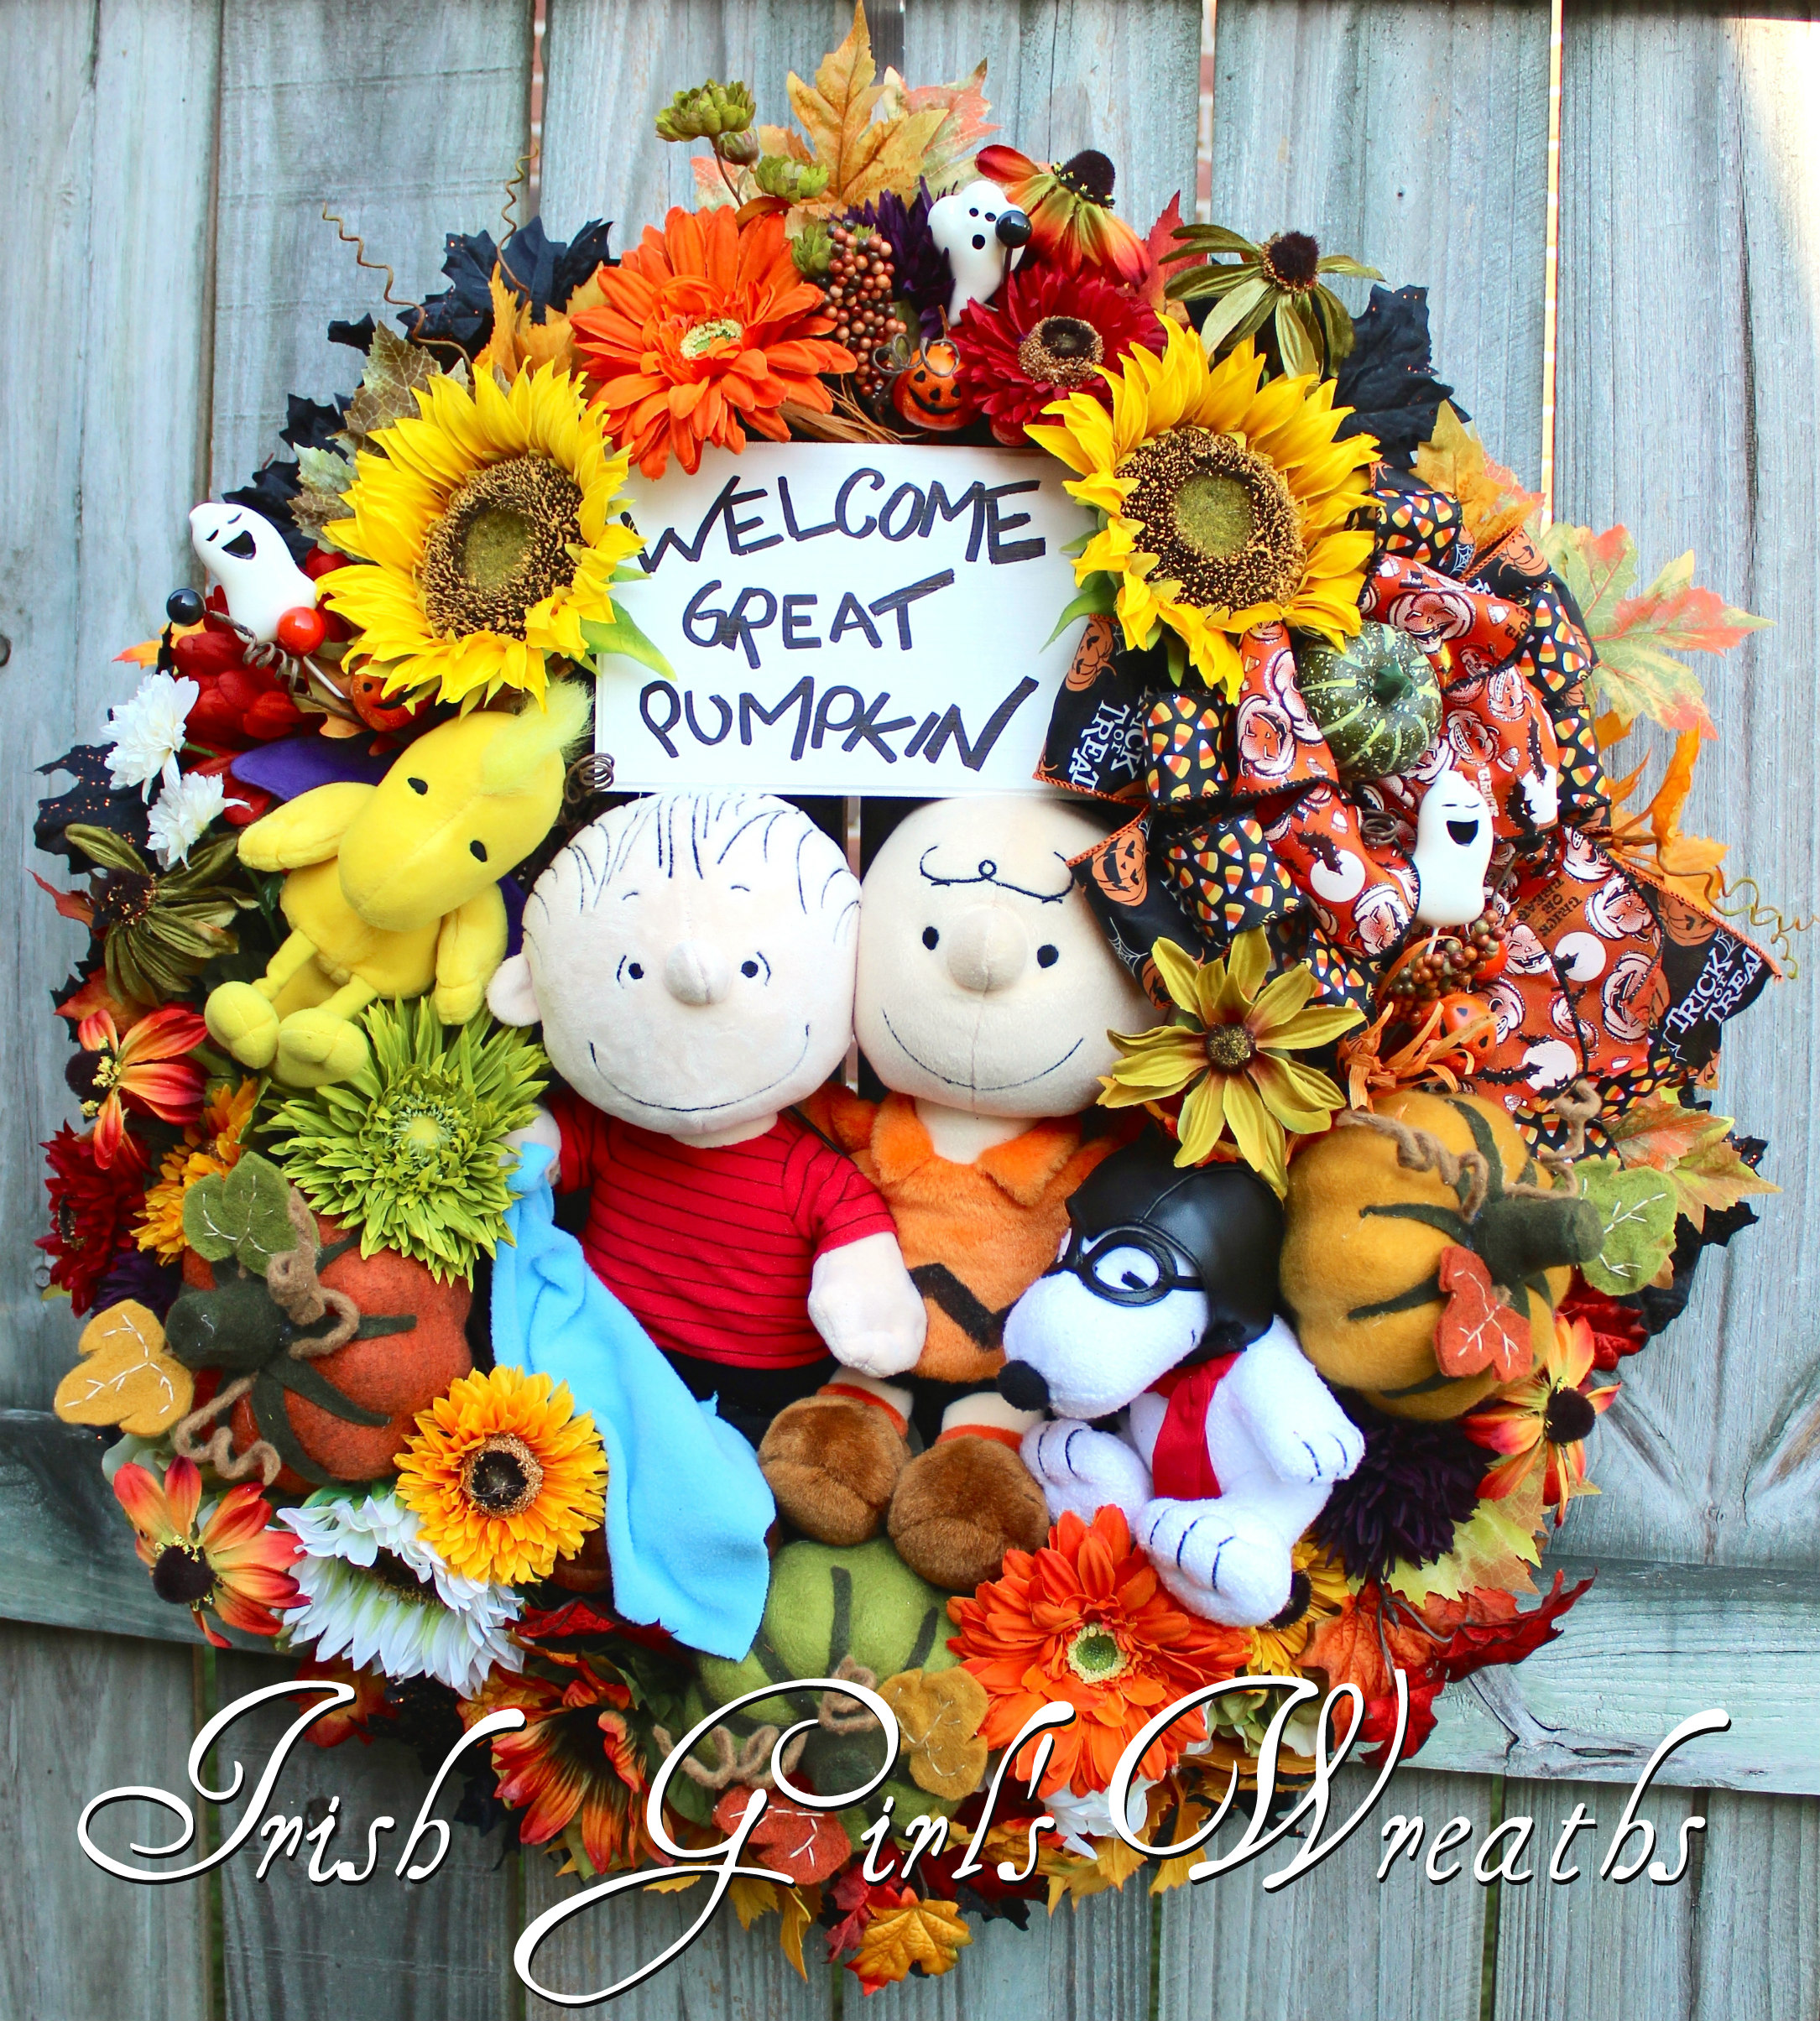 Welcome Great Pumpkin Peanuts Halloween Wreath, Custom for Gina